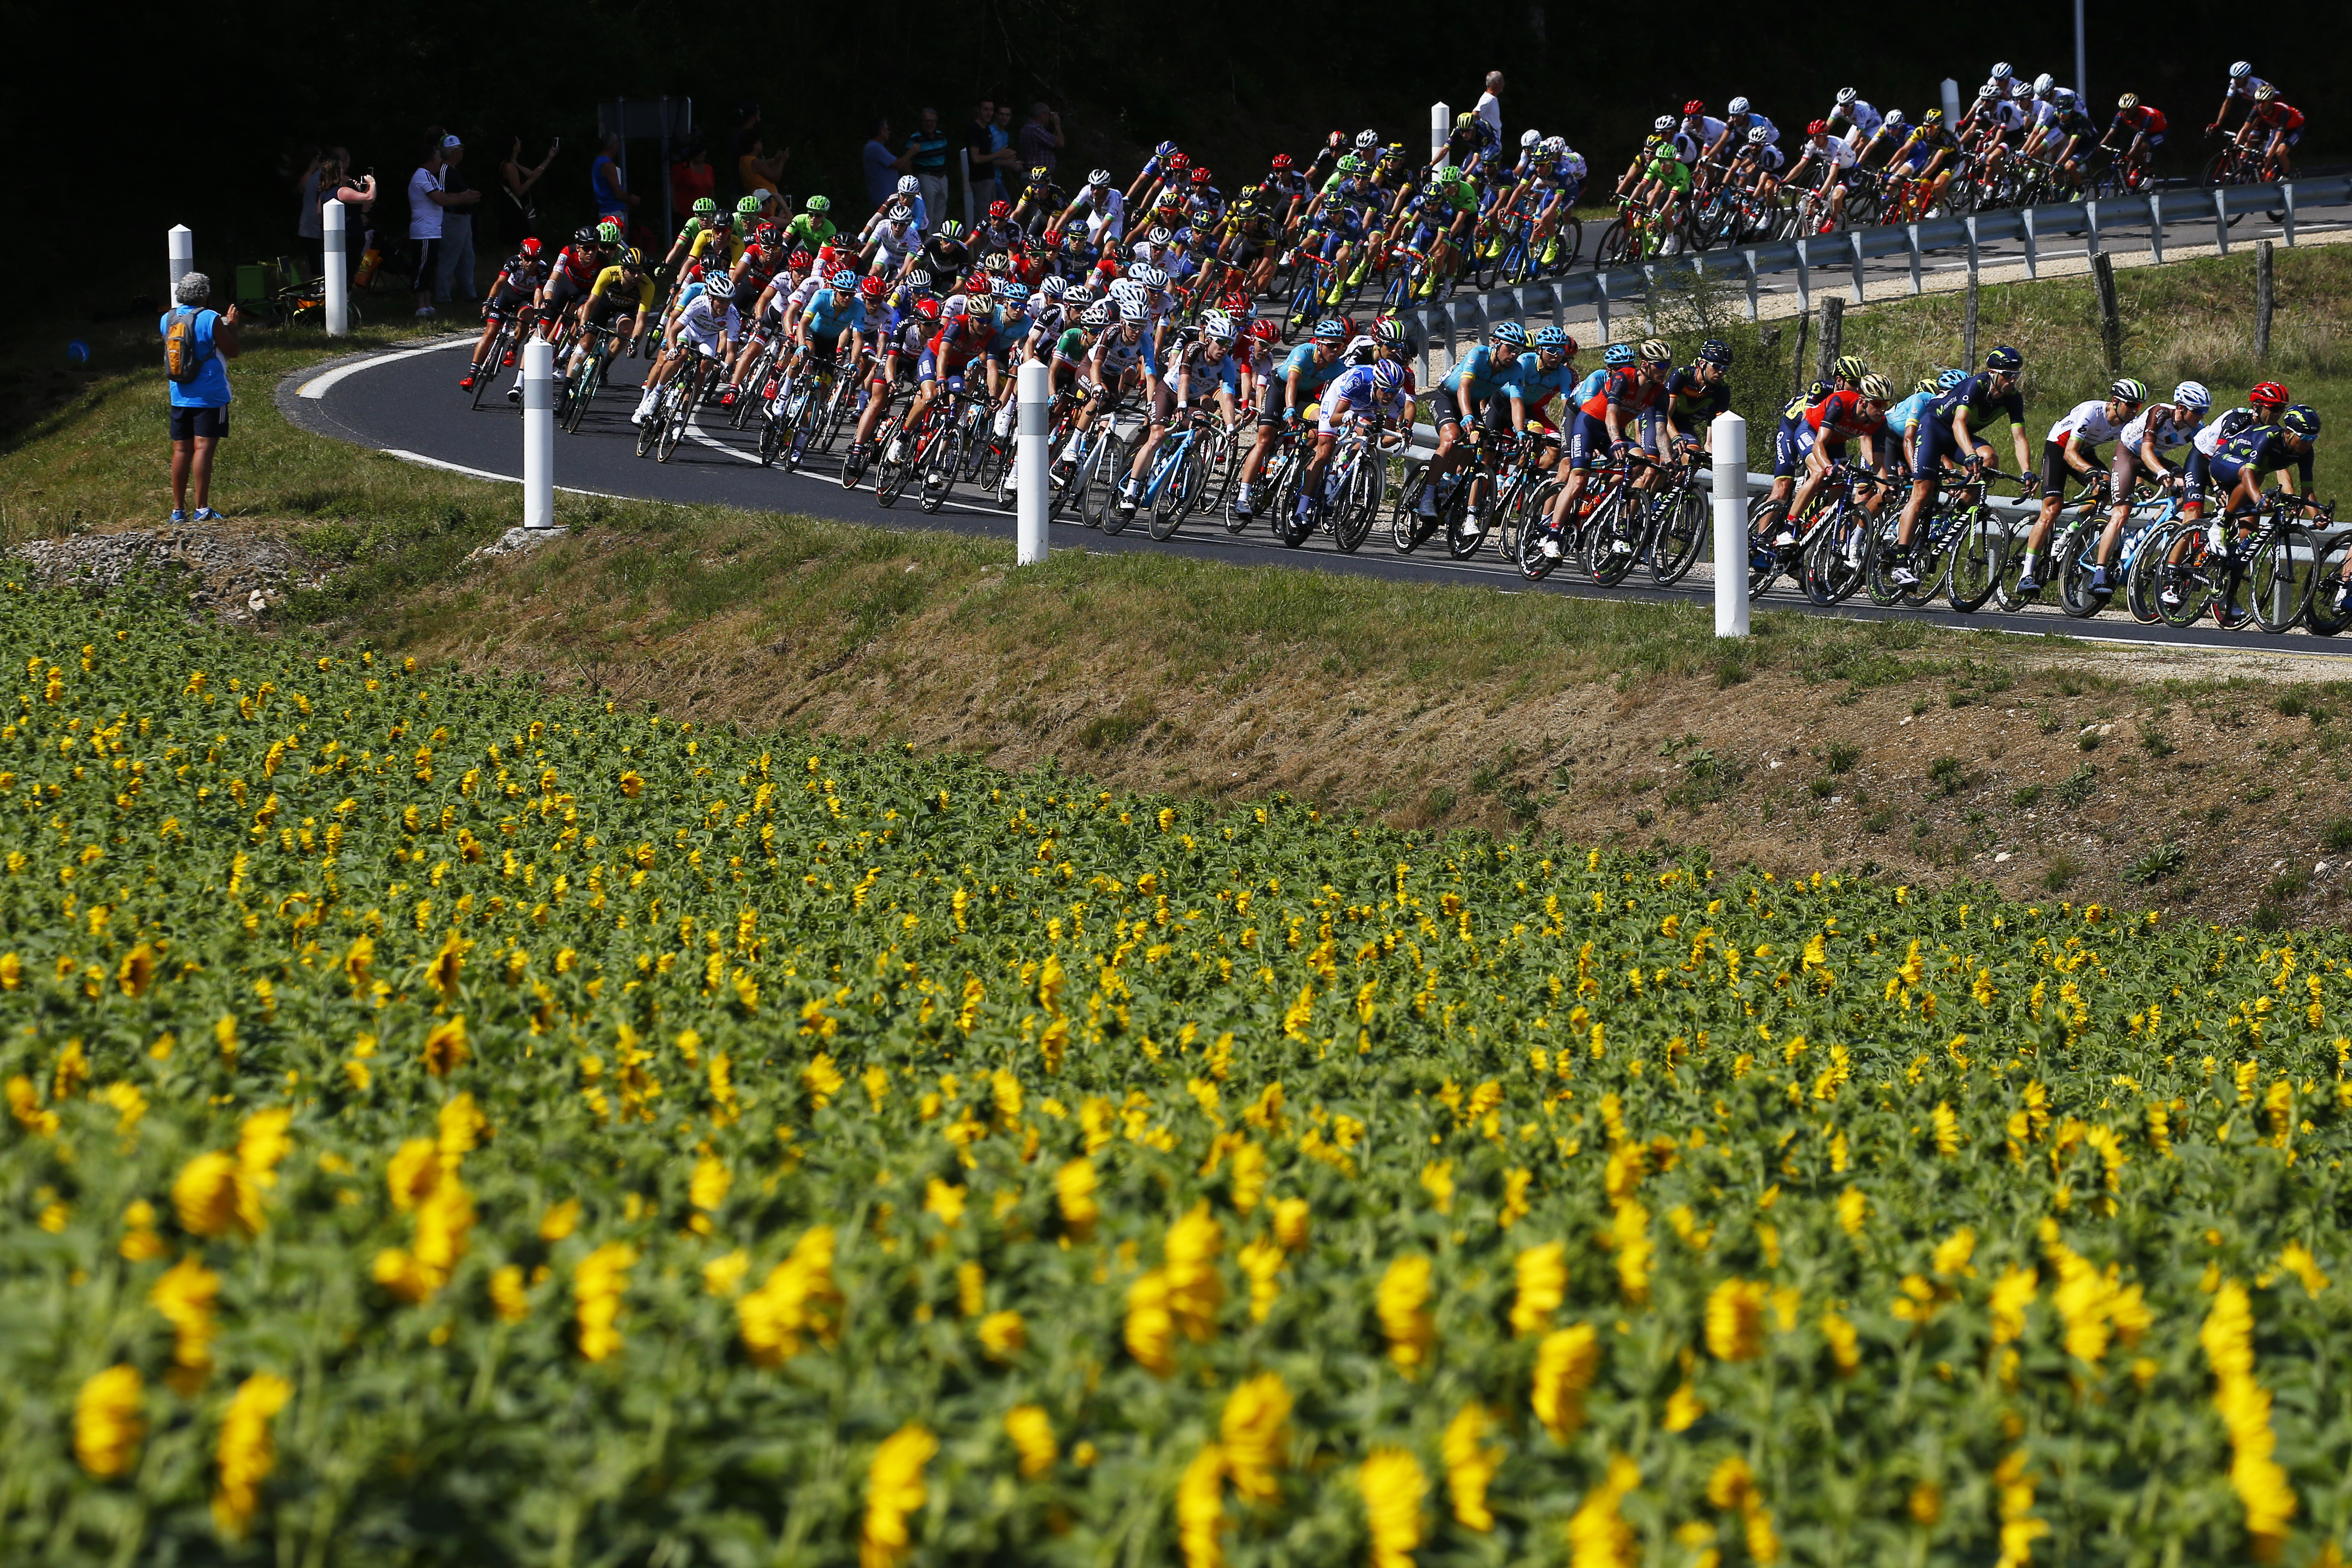 The pack speeds downhill during the fourth stage of the Tour de France cycling race over 207.5 kilometers (129 miles) with start in Mondorf-les-Bains, Luxembourg, and finish in Vittel, France, Tuesday, July 4, 2017. (AP Photo/Peter Dejong)